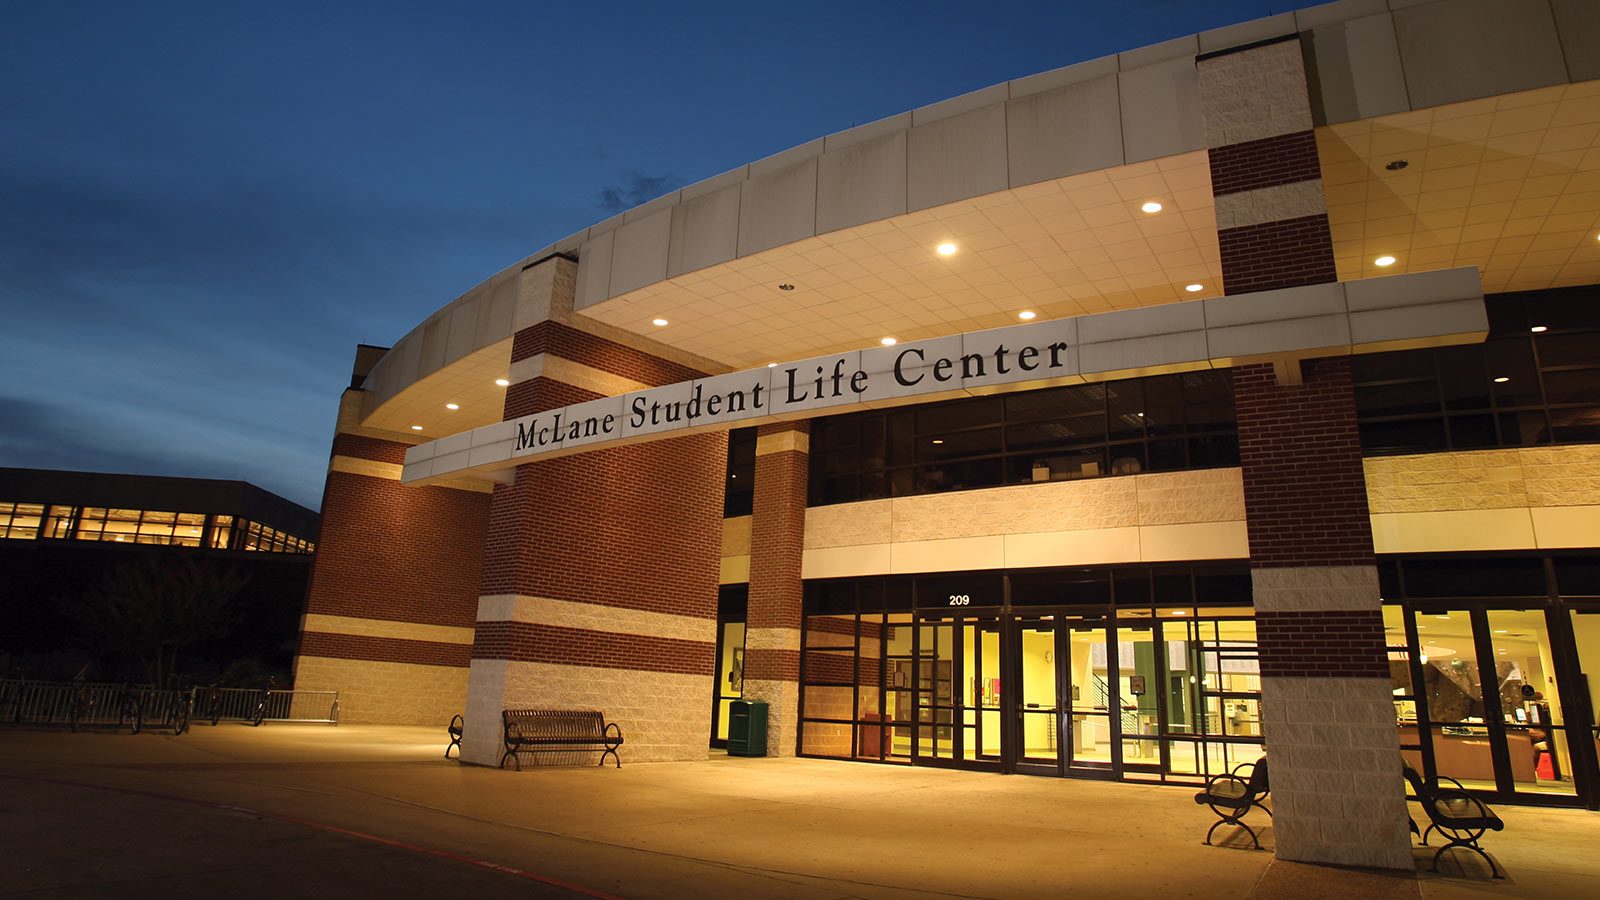 The McLane Student Life Center is the hub of student recreational life at Baylor.